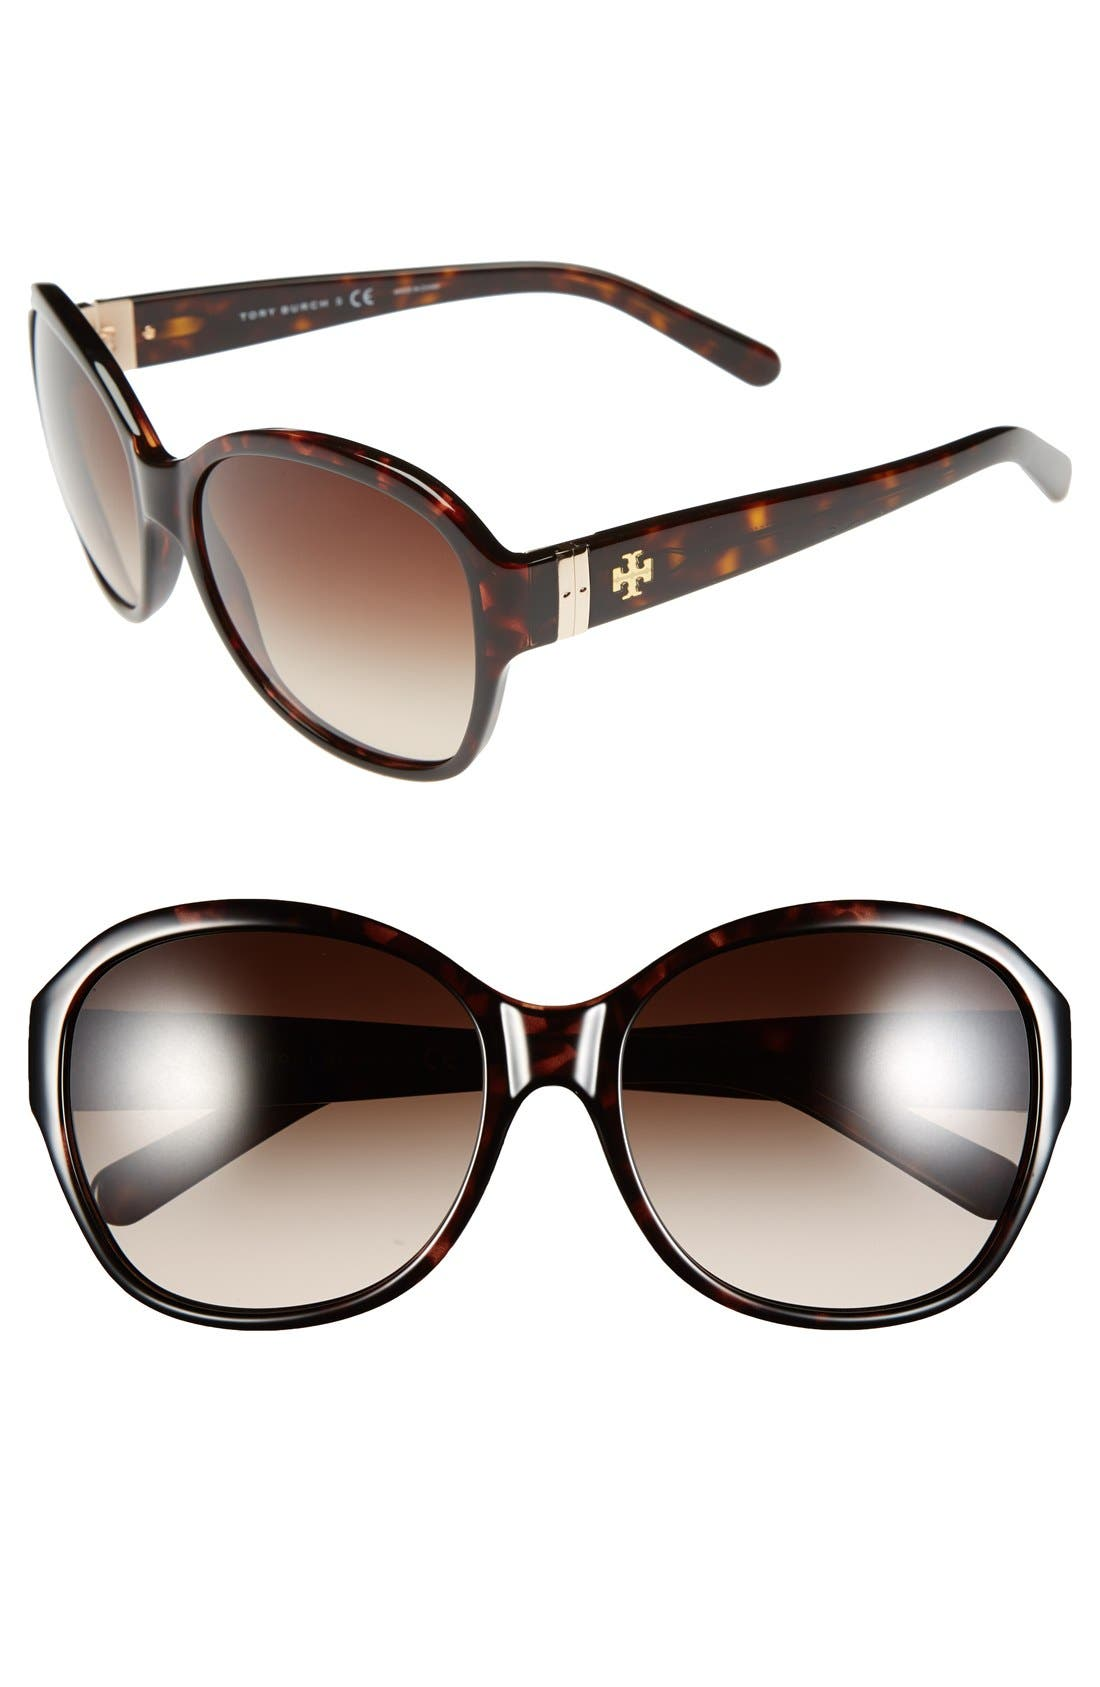 Alternate Image 1 Selected - Tory Burch 57mm Round Sunglasses